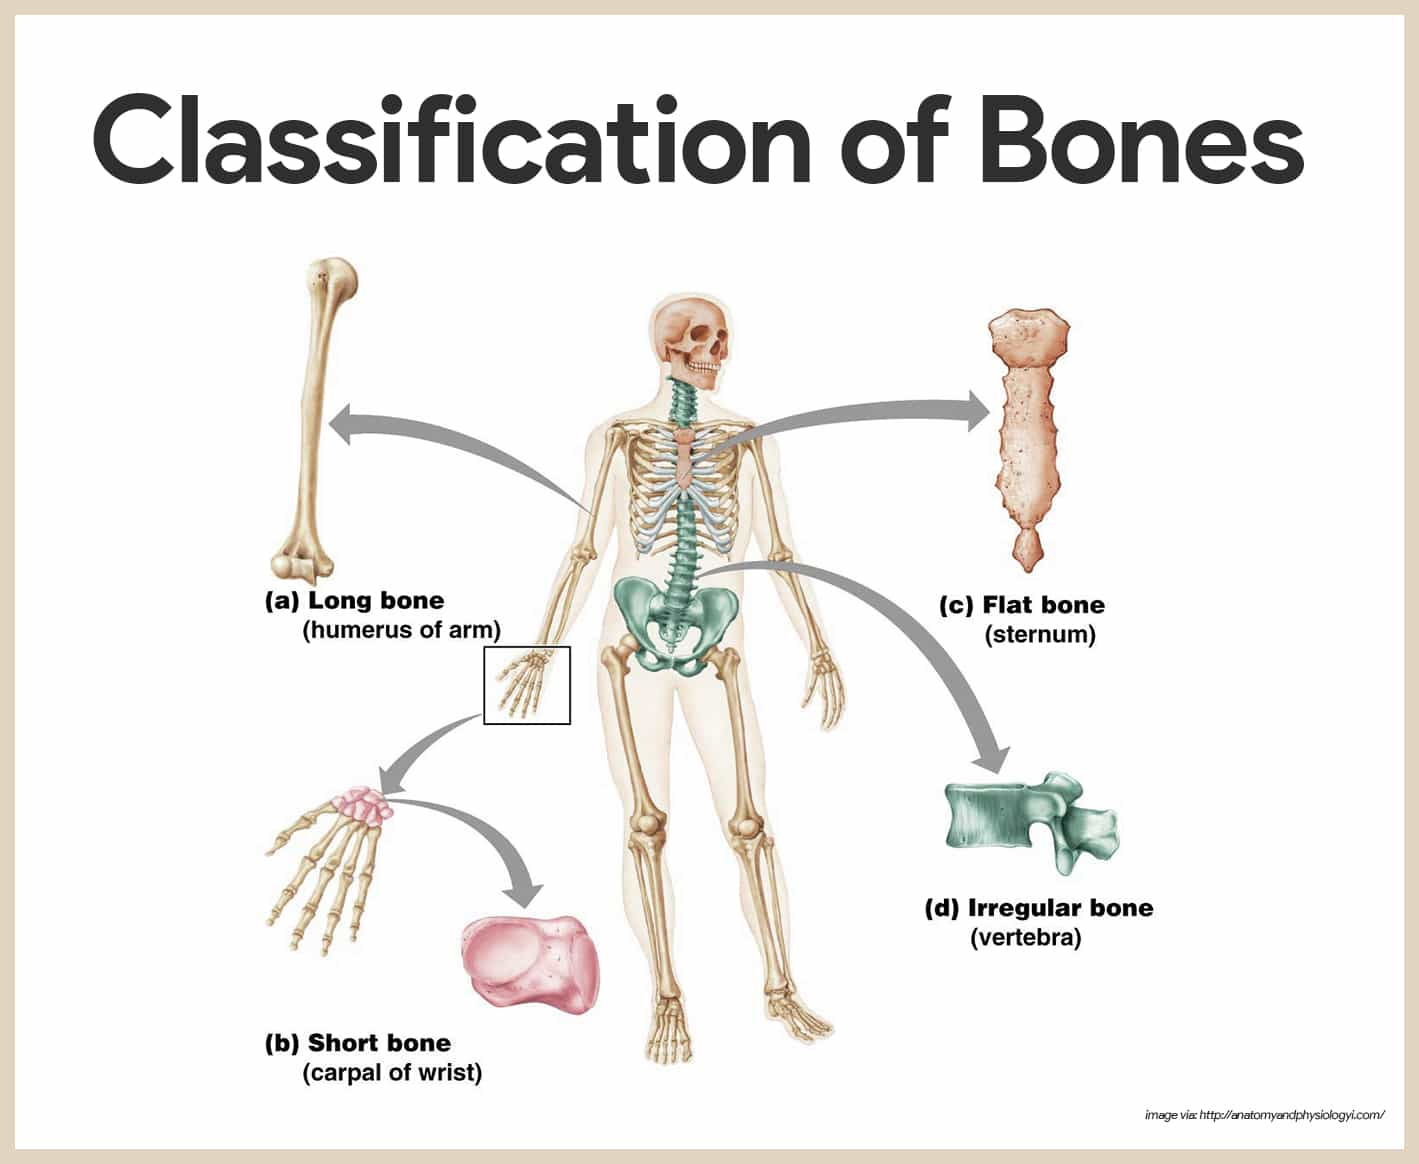 Classification of Bones-Skeletal System Anatomy and Physiology for Nurses